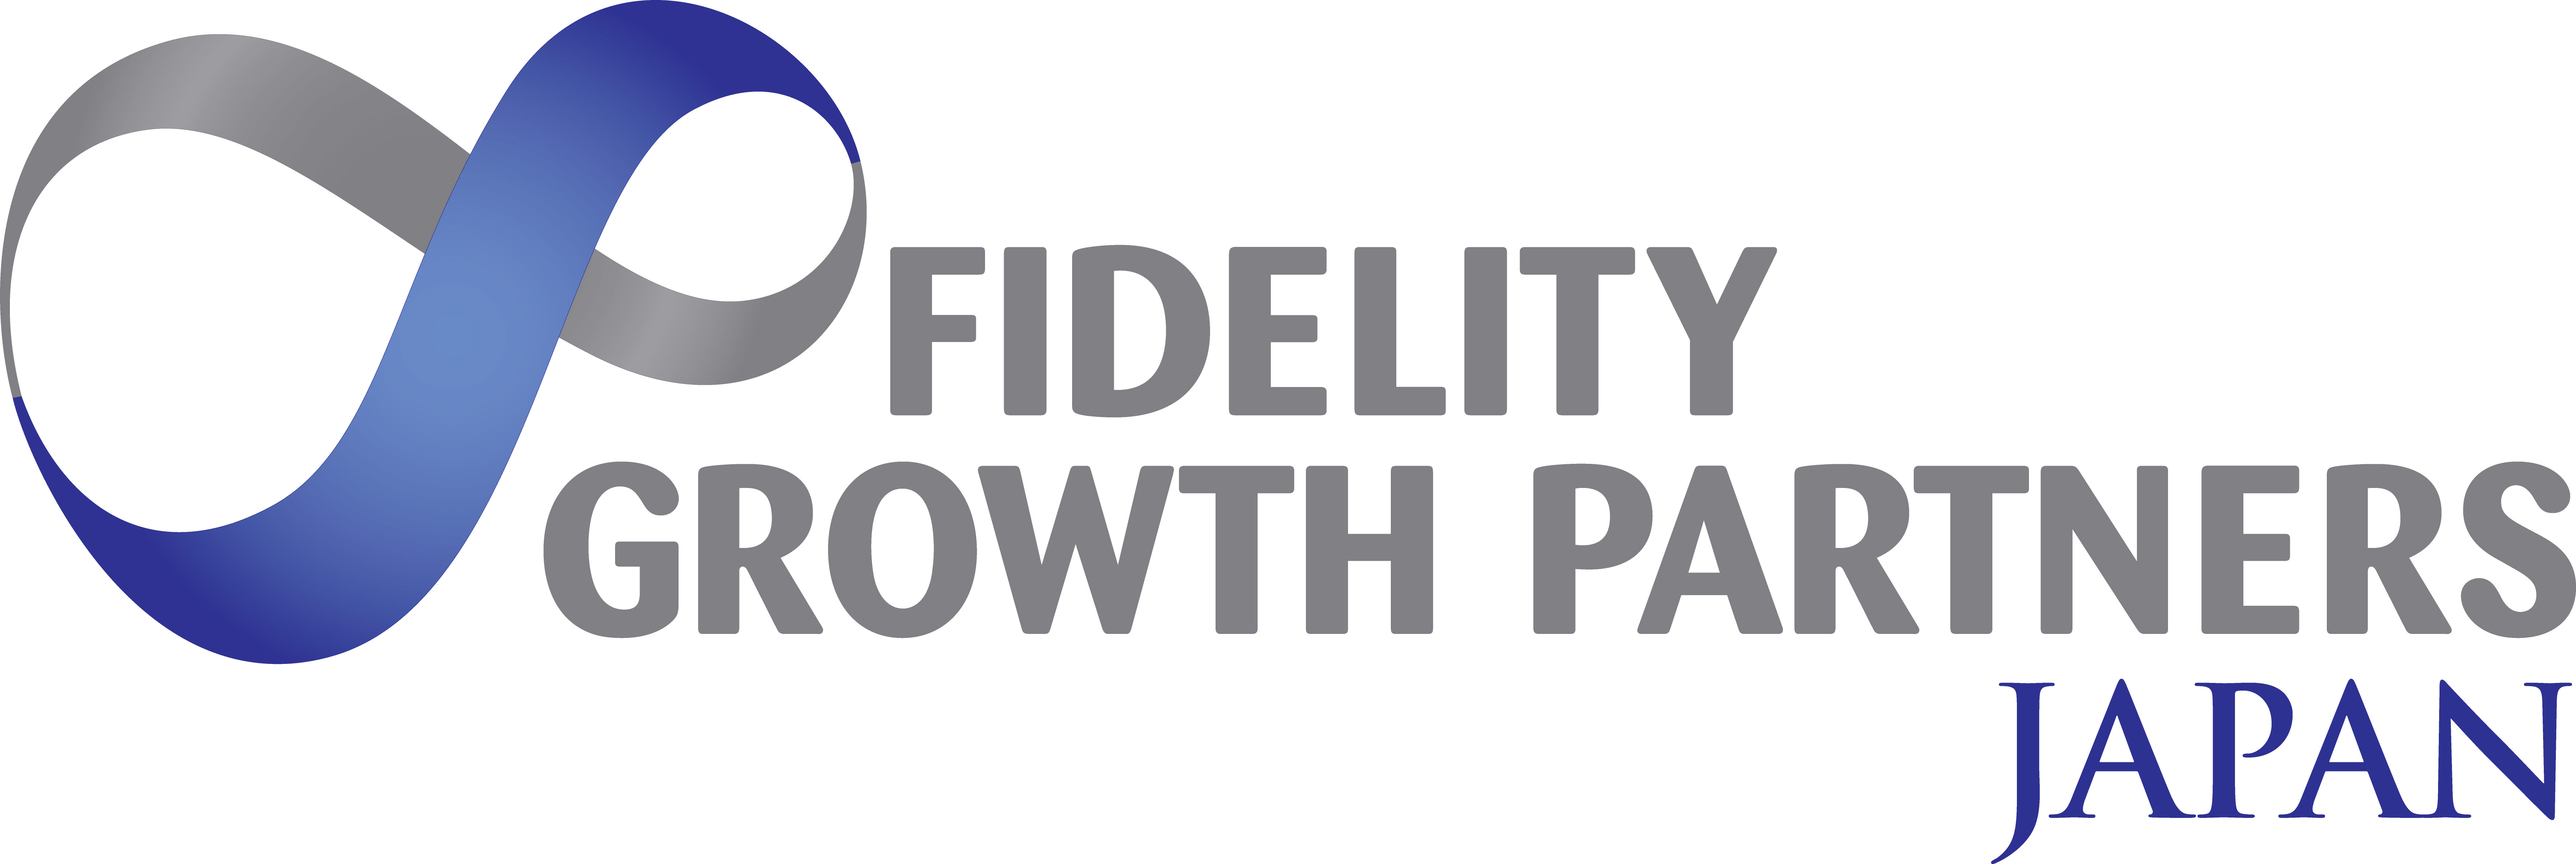 Fidelity Growth Partners Japan ロゴ